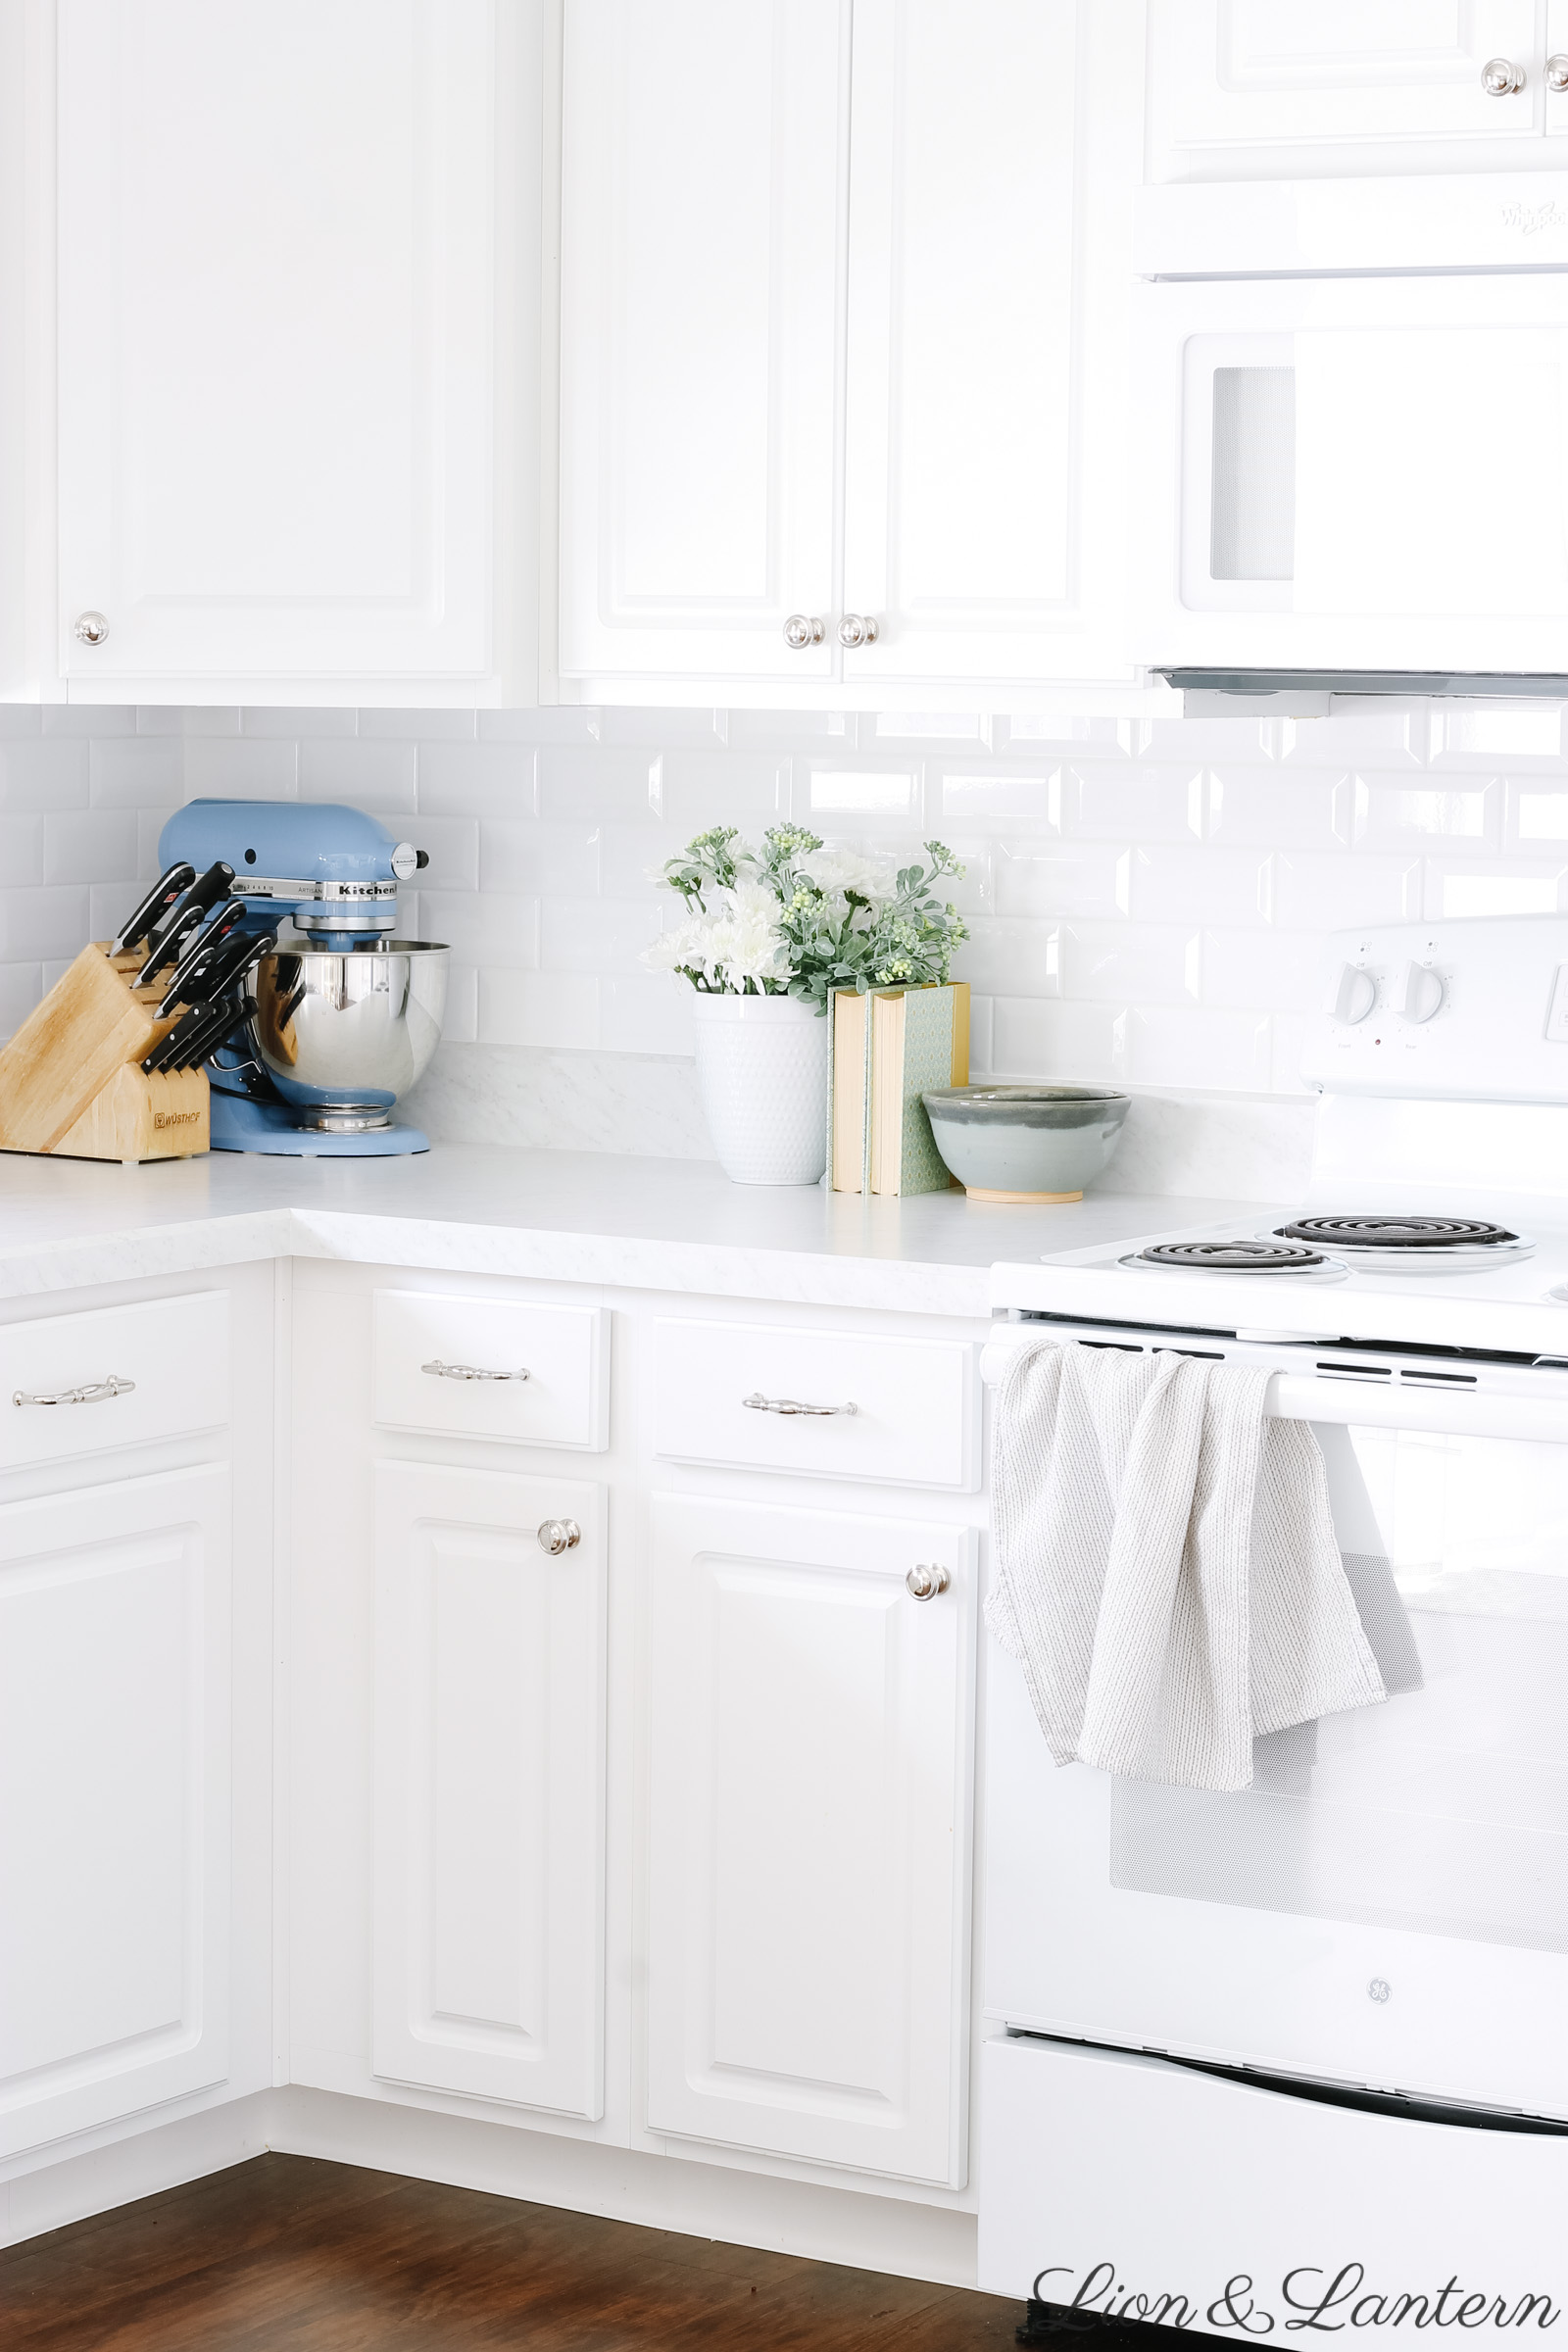 Spring Home Tour 2019 at LionAndLantern.com | vintage kitchen decor, vintage books, coastal home, white subway tile, budget decorating, neutral kitchen